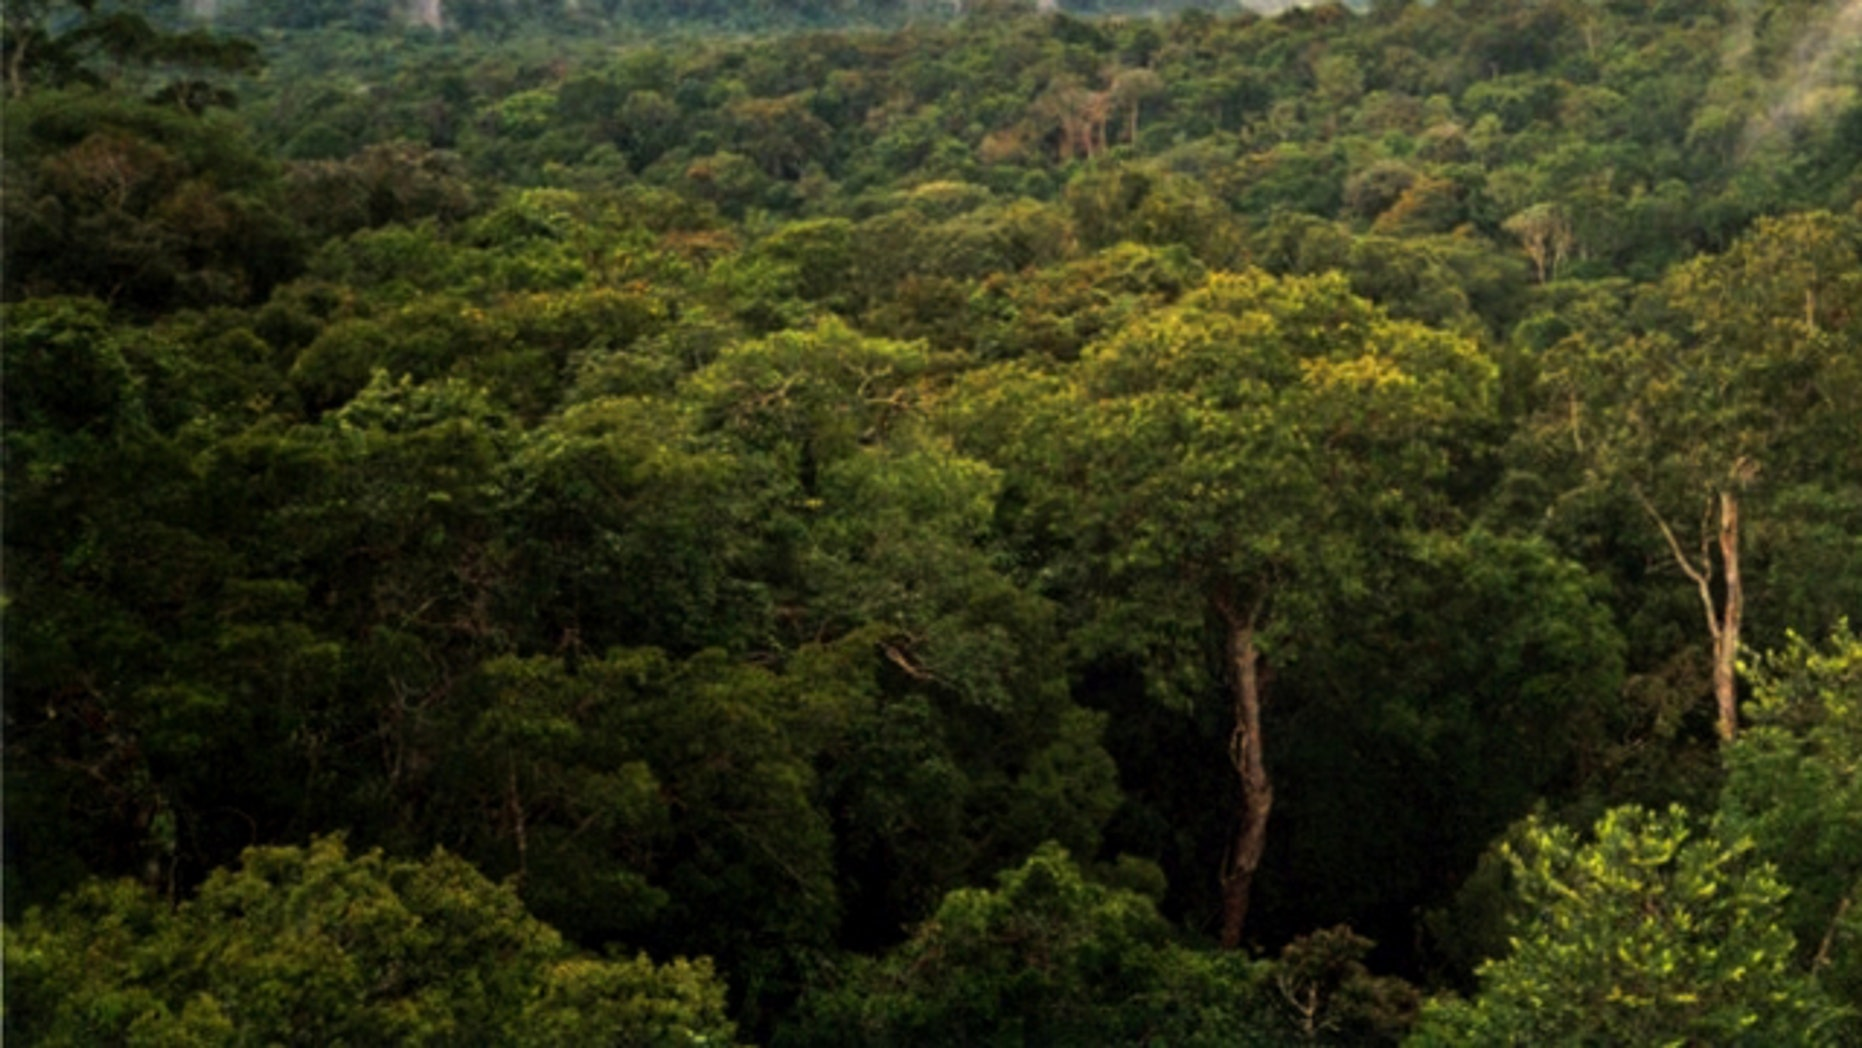 A view of the Amazon basin forest north of Manaus, Brazil. A U.N. report stated that global warming is threatening the forests -- a statement that was recently discredited.